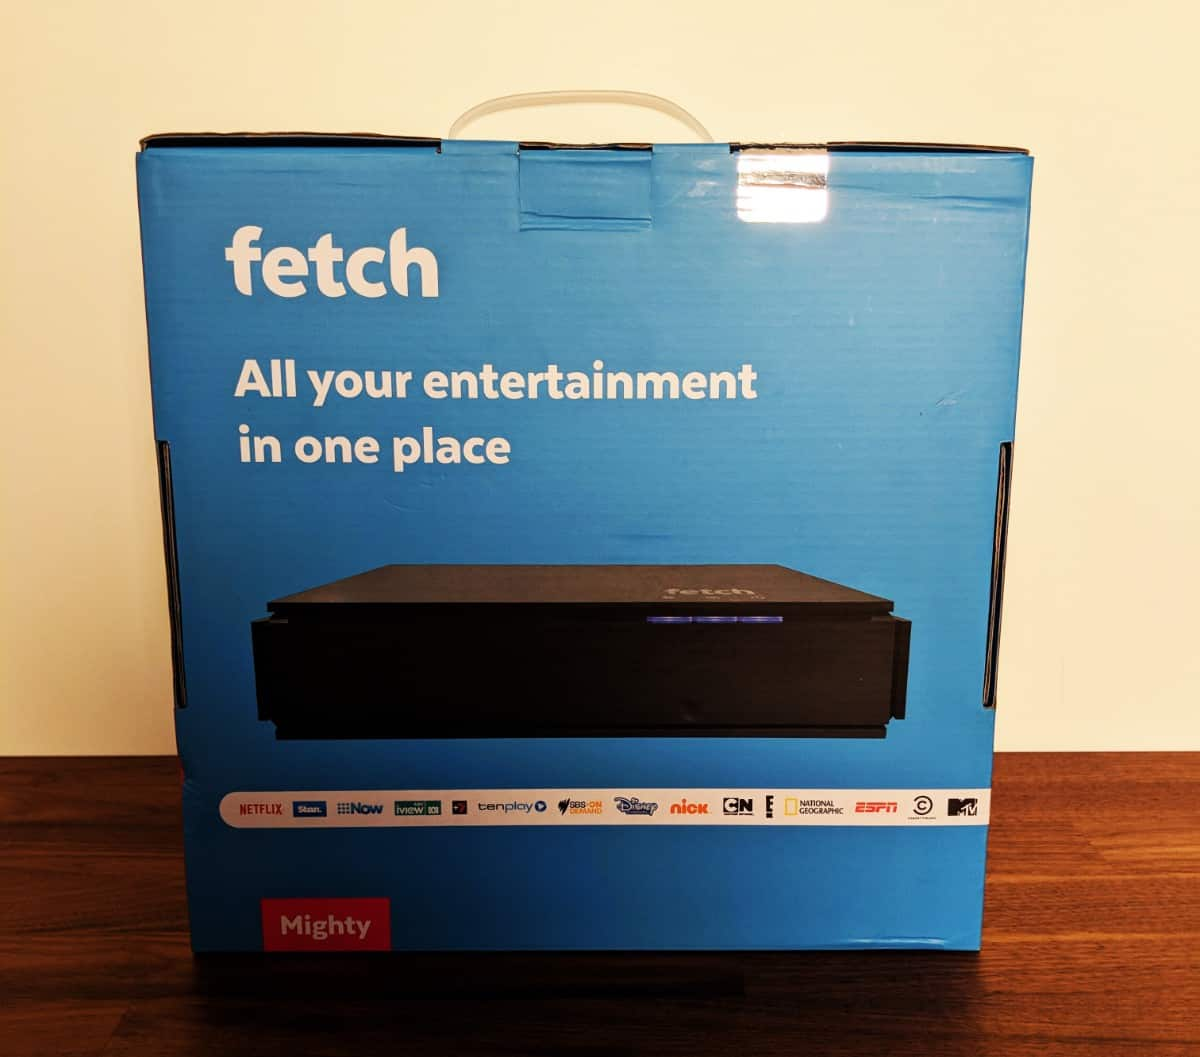 Fetch-TV-Mighty-Photos-15 Fetch TV Review